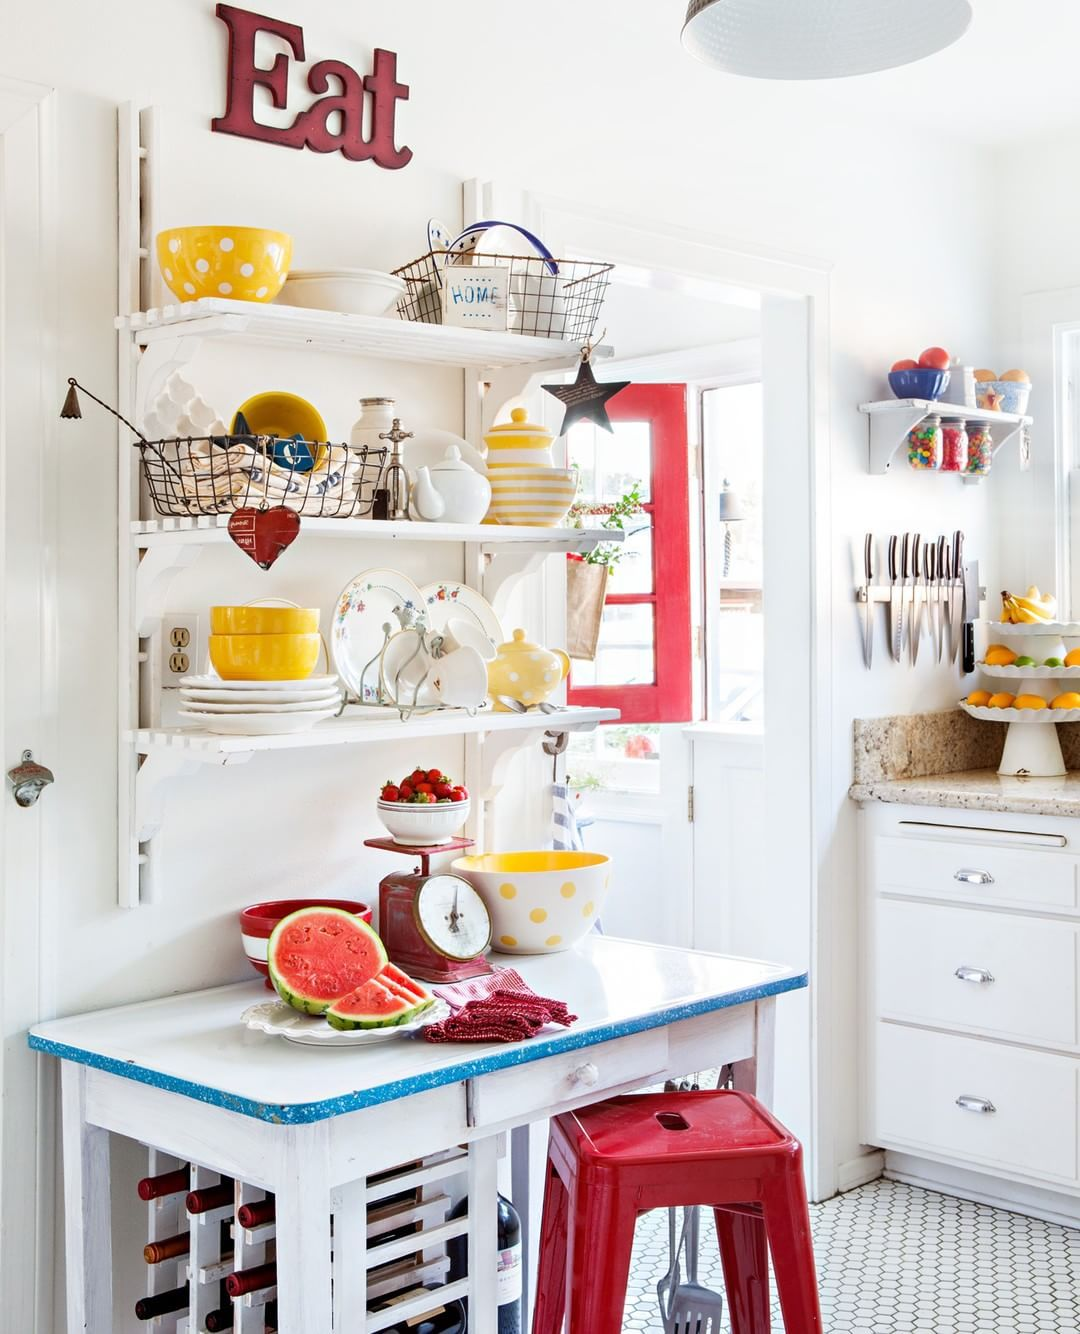 We love a kitchen with character and artandsand us charming beach